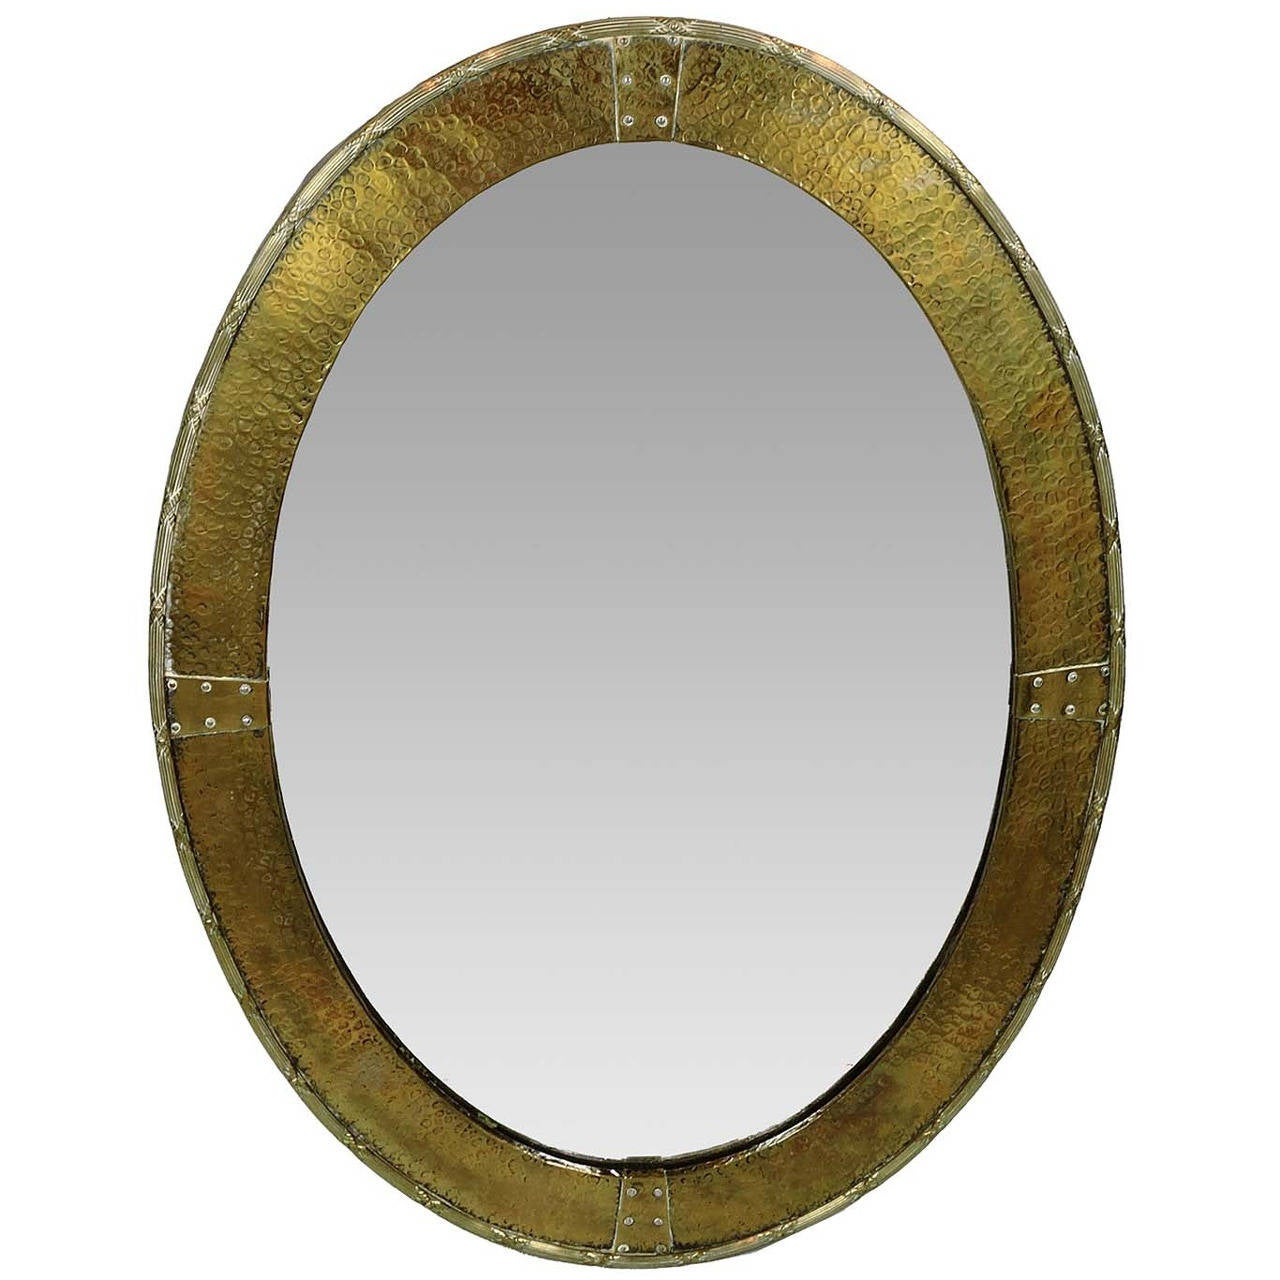 Arts and crafts mirrors - English Arts Crafts Hammered Brass Oval Mirror 1